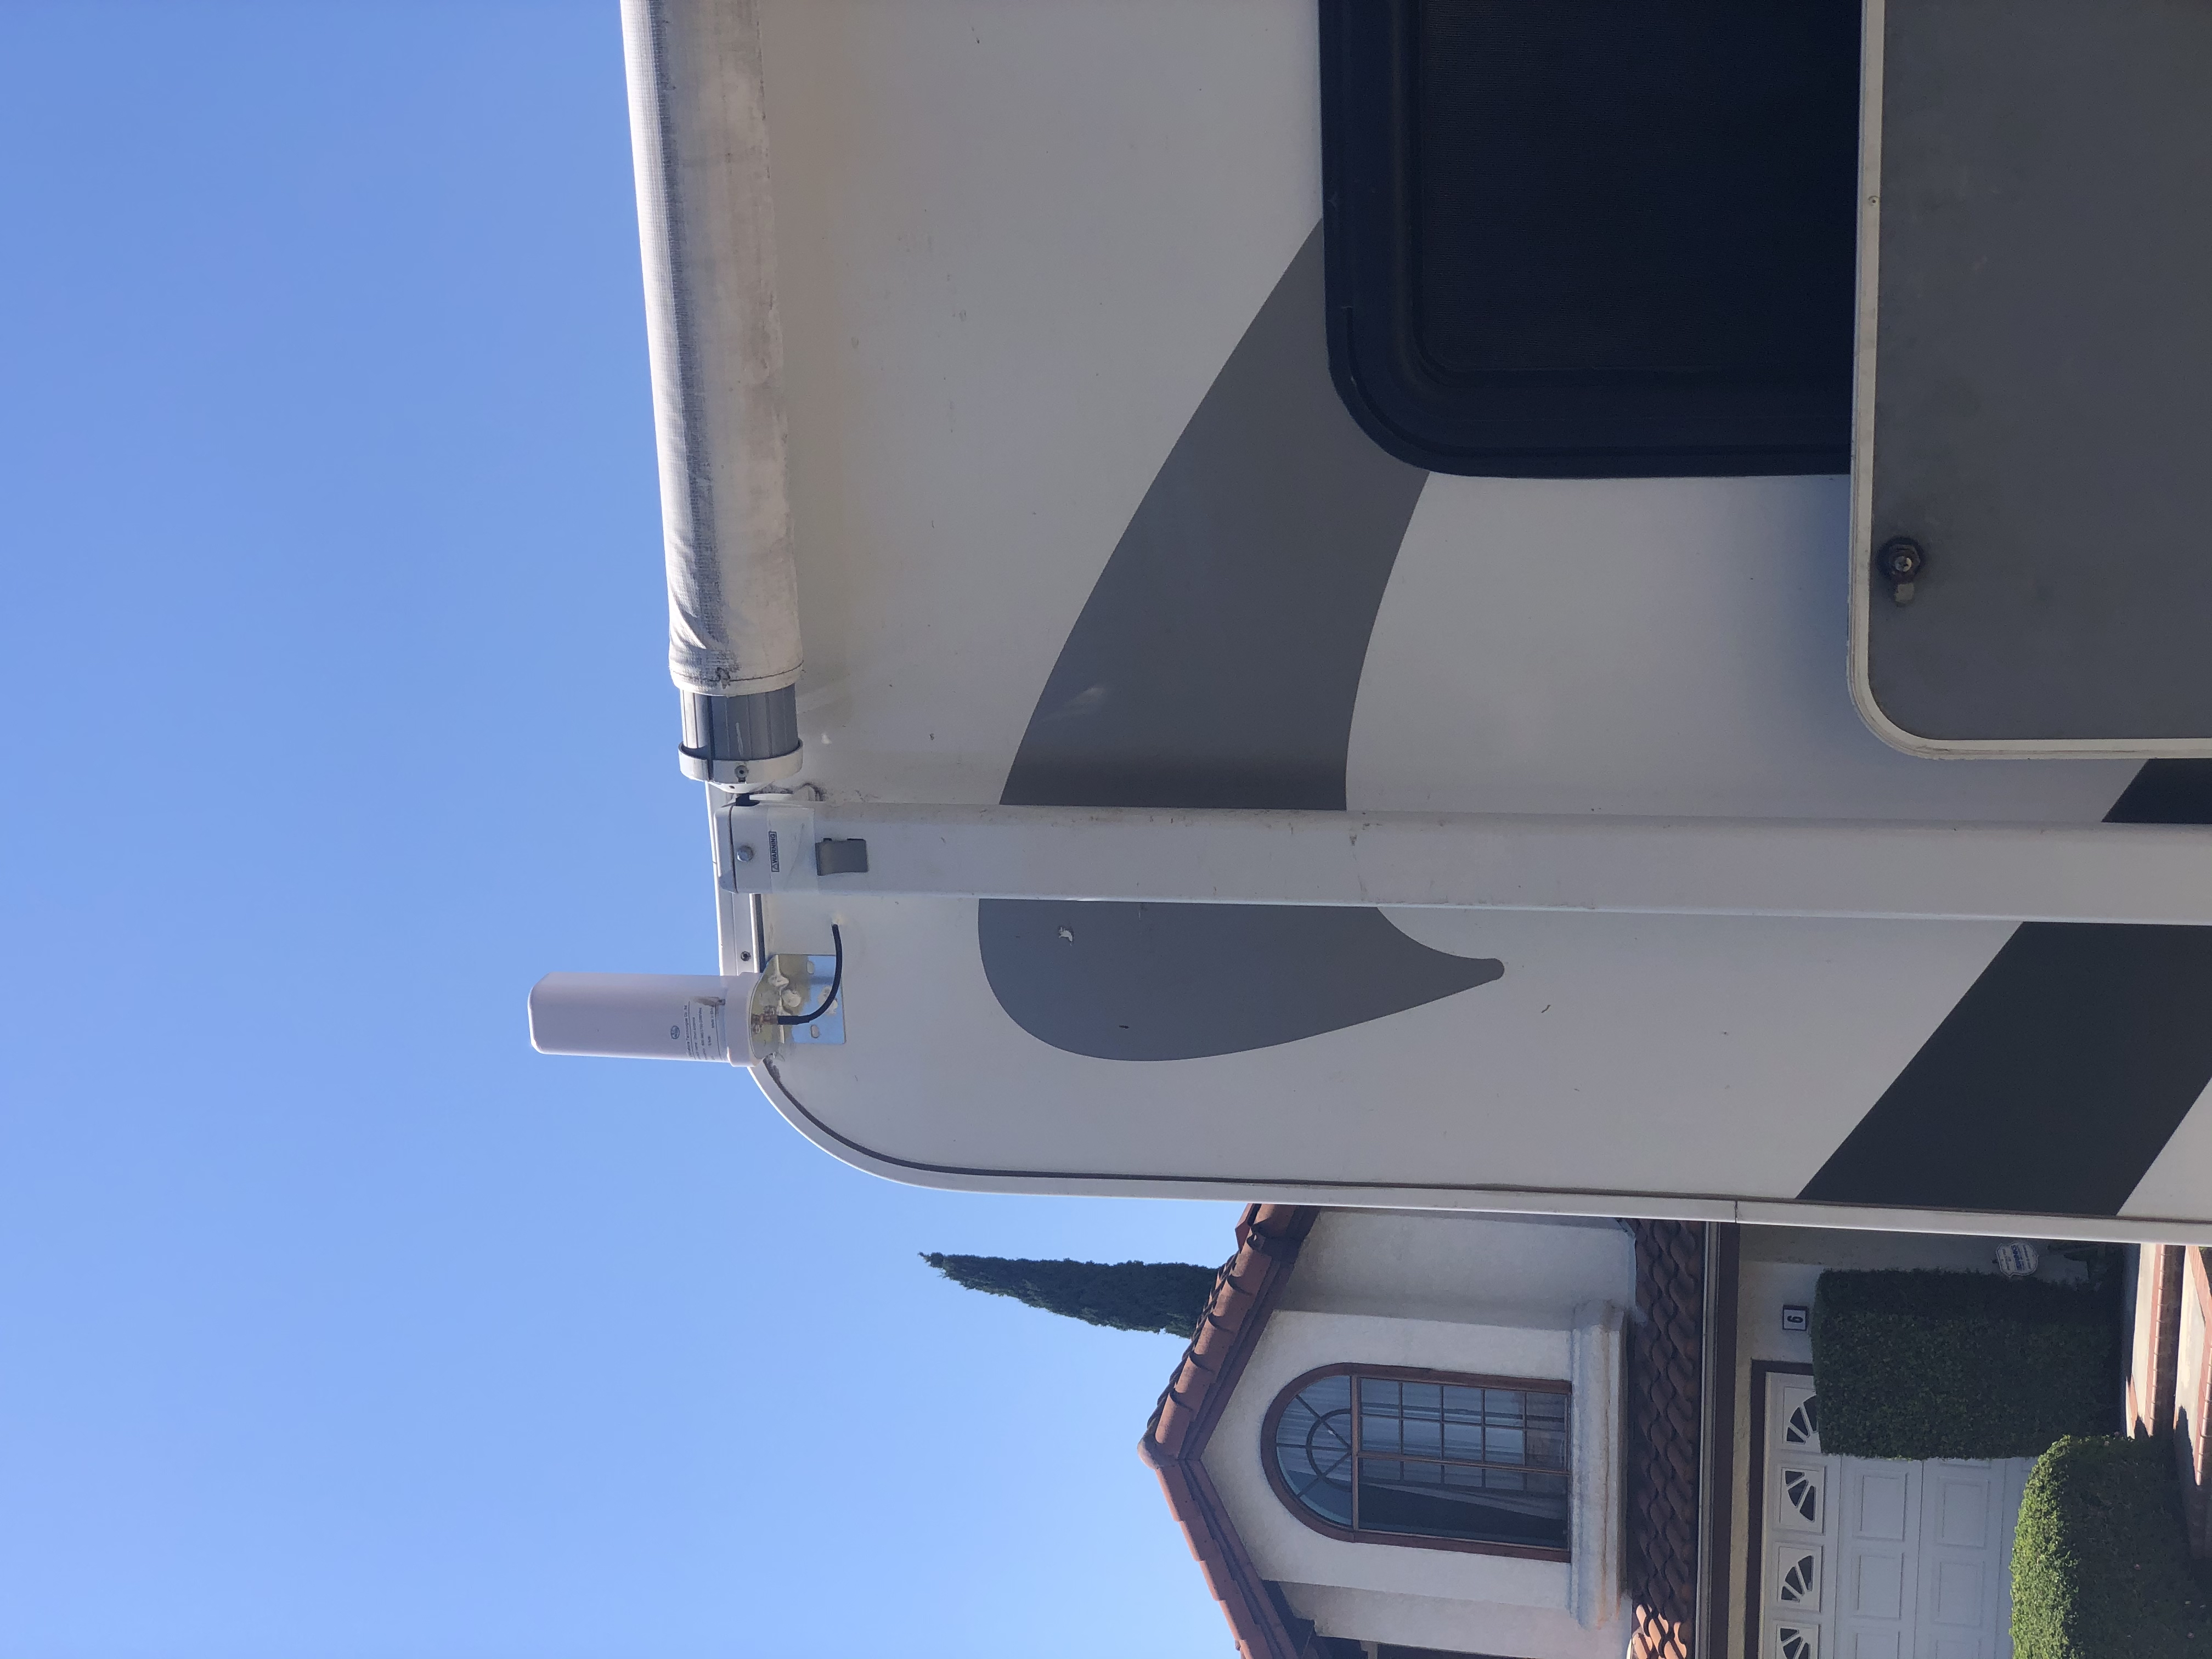 Mobile phone signal amplifier antenna. Thor Motor Coach Four Winds 2012